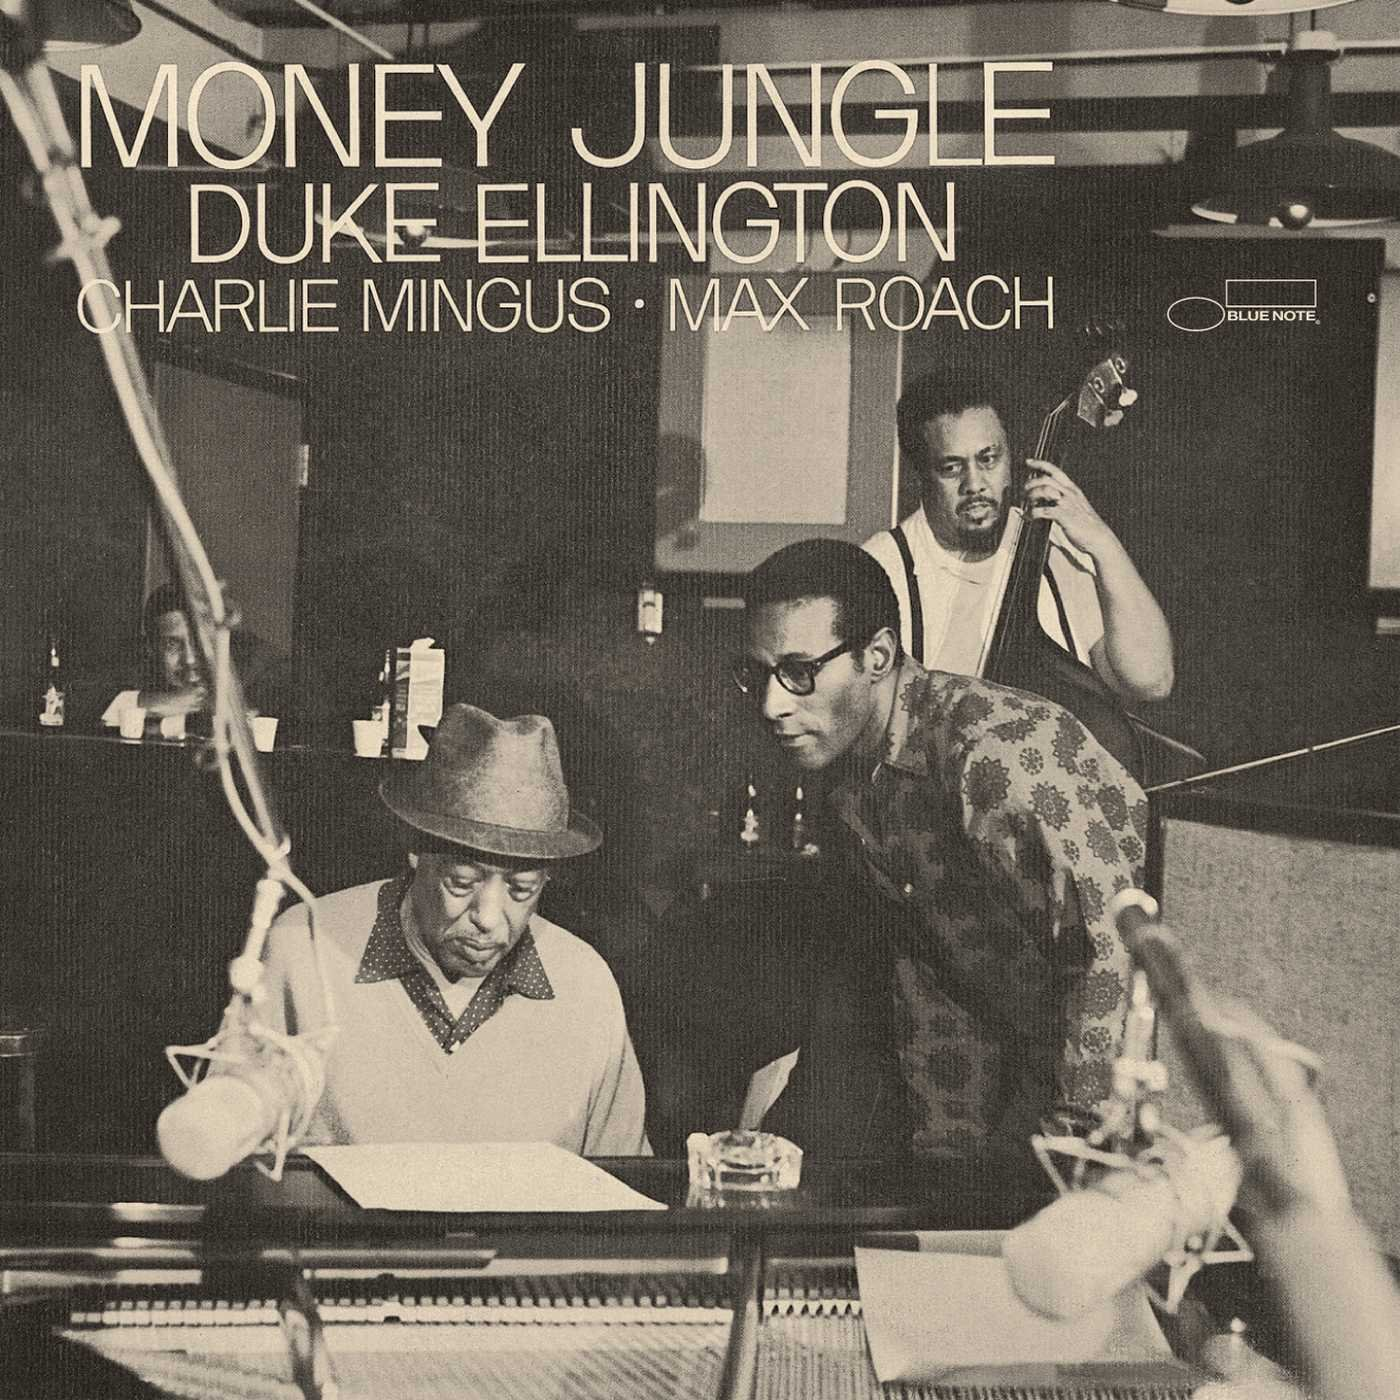 duke ellington essay count ossie and the birth of reggae red bull  money jungle by duke ellington charlie mingus max roach amazon money jungle by duke ellington charlie